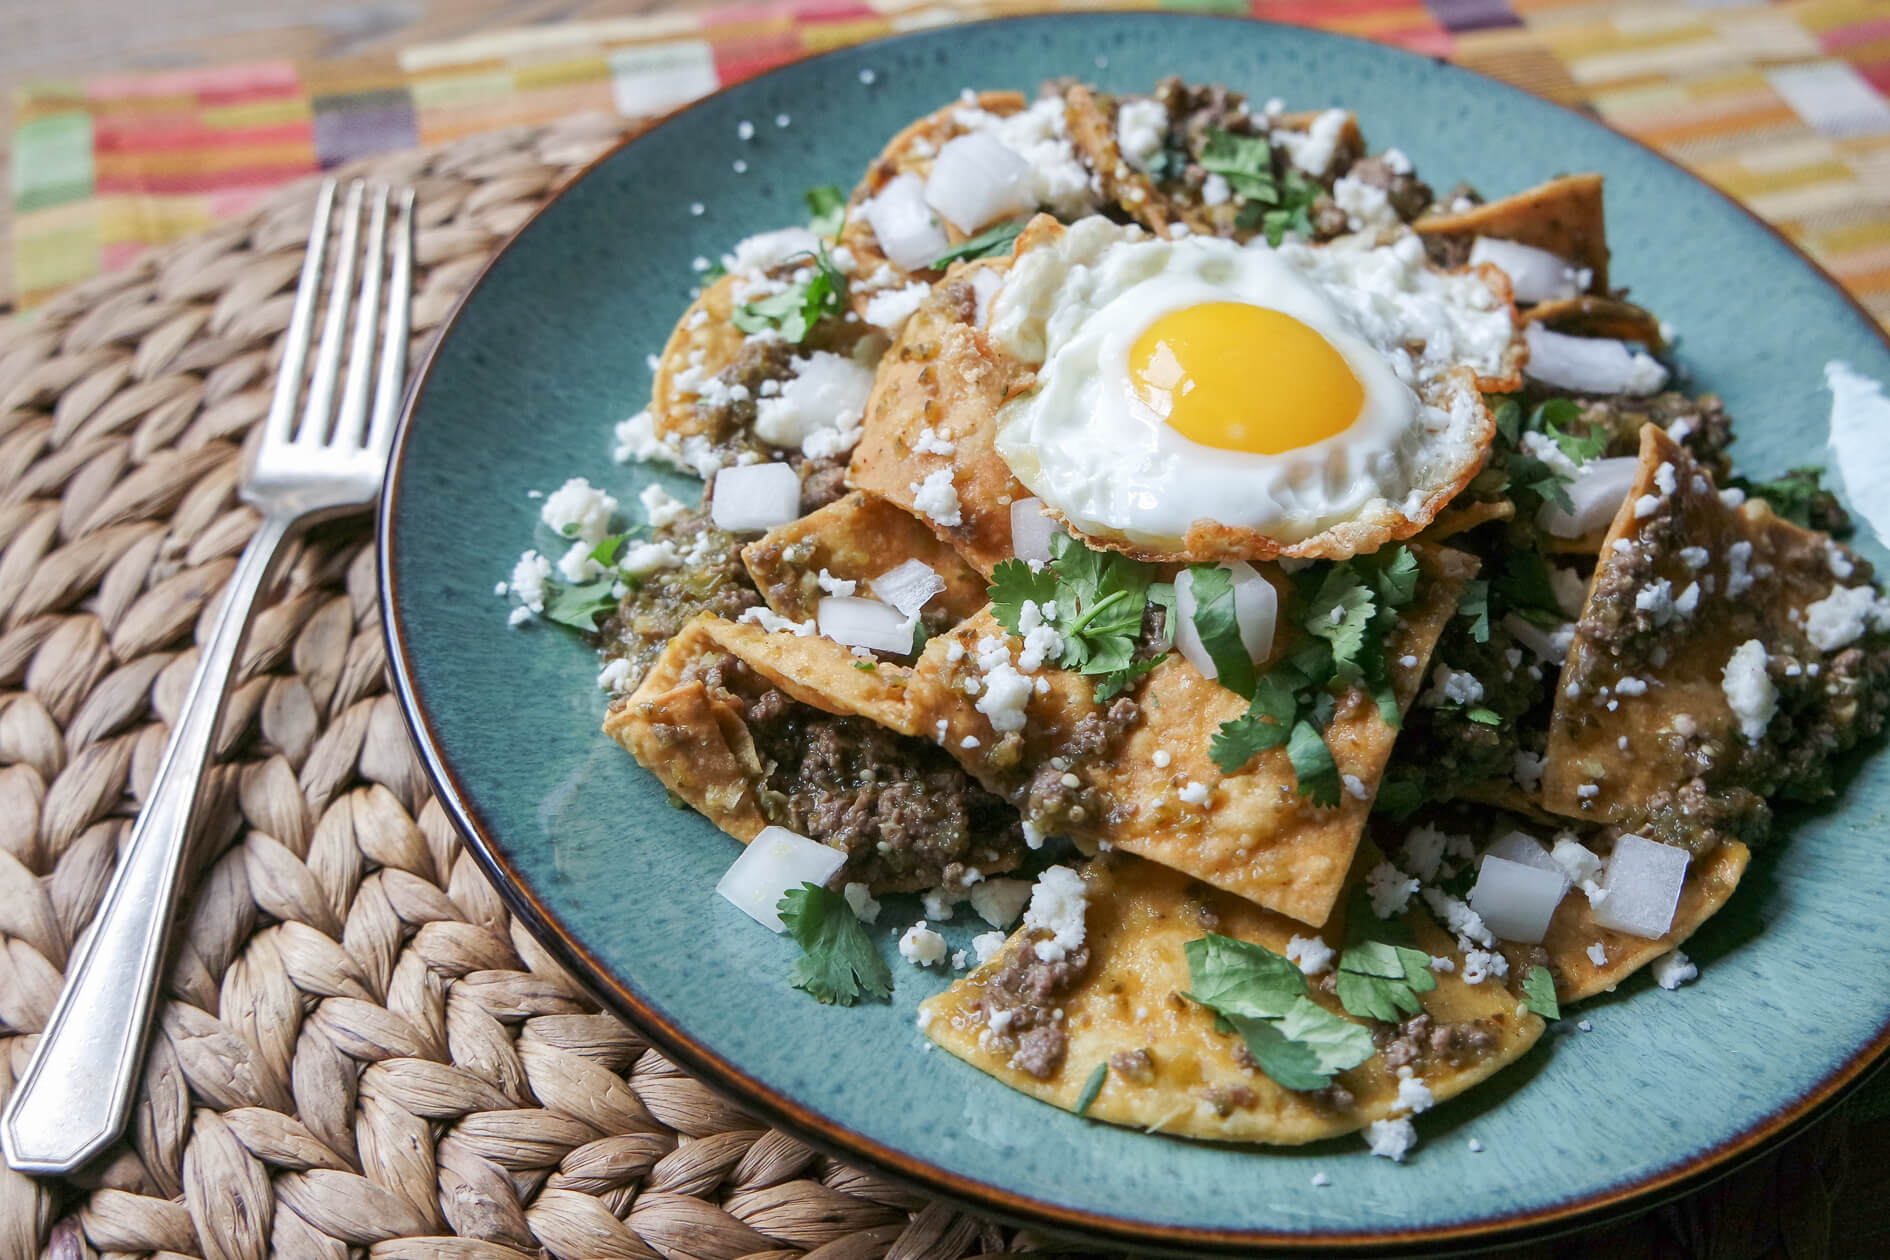 finished chilaquiles verdes with fried egg